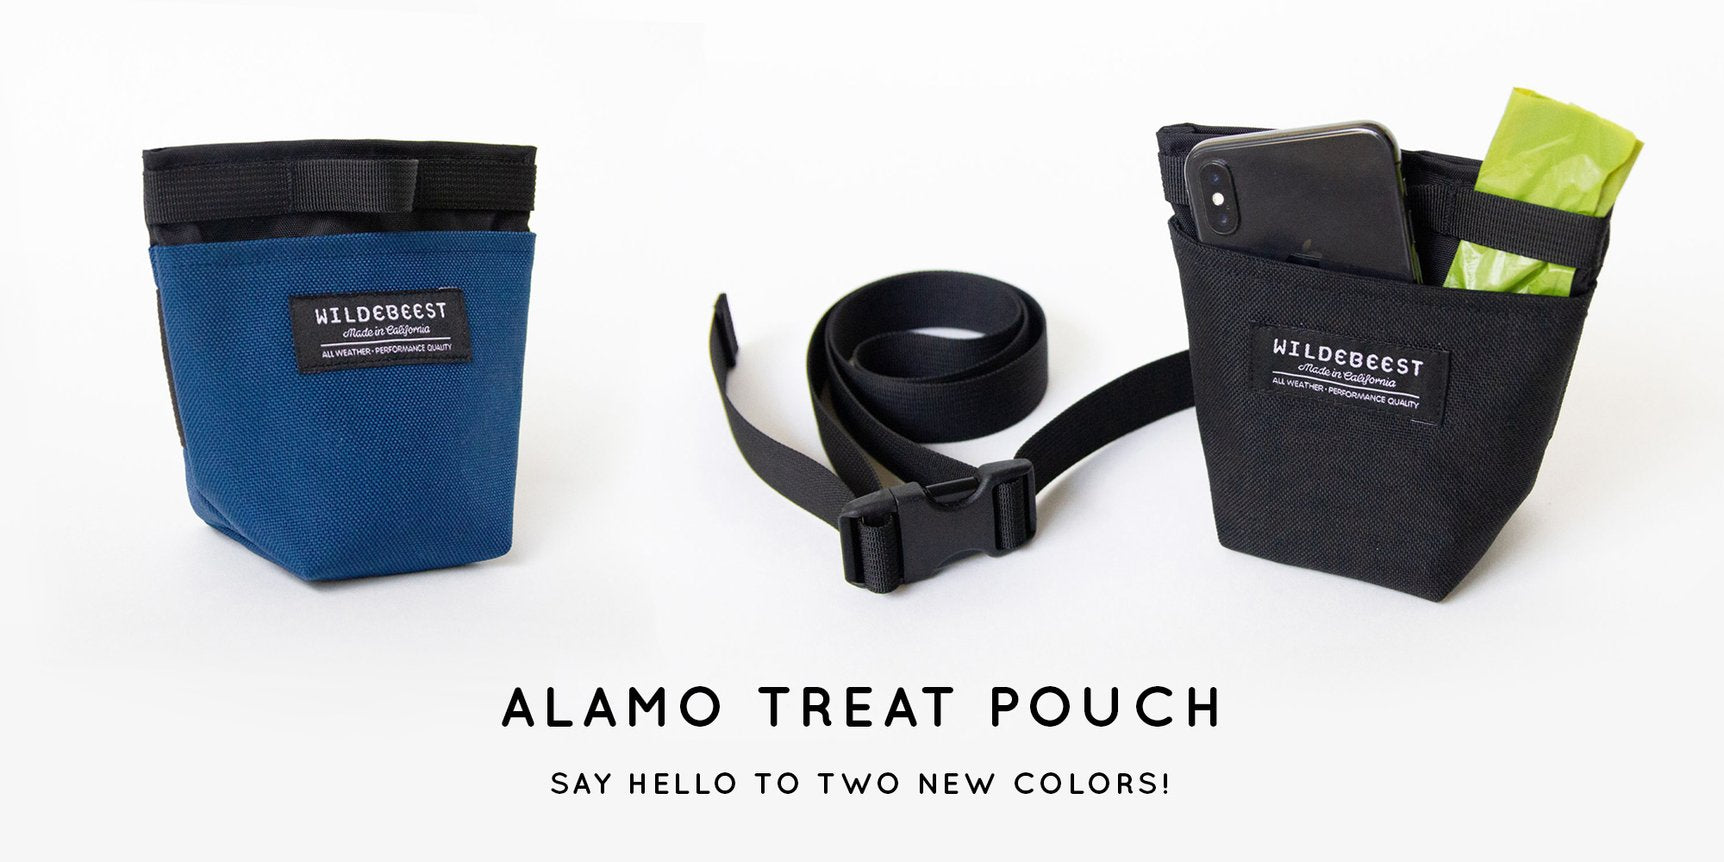 alamo treat pouch